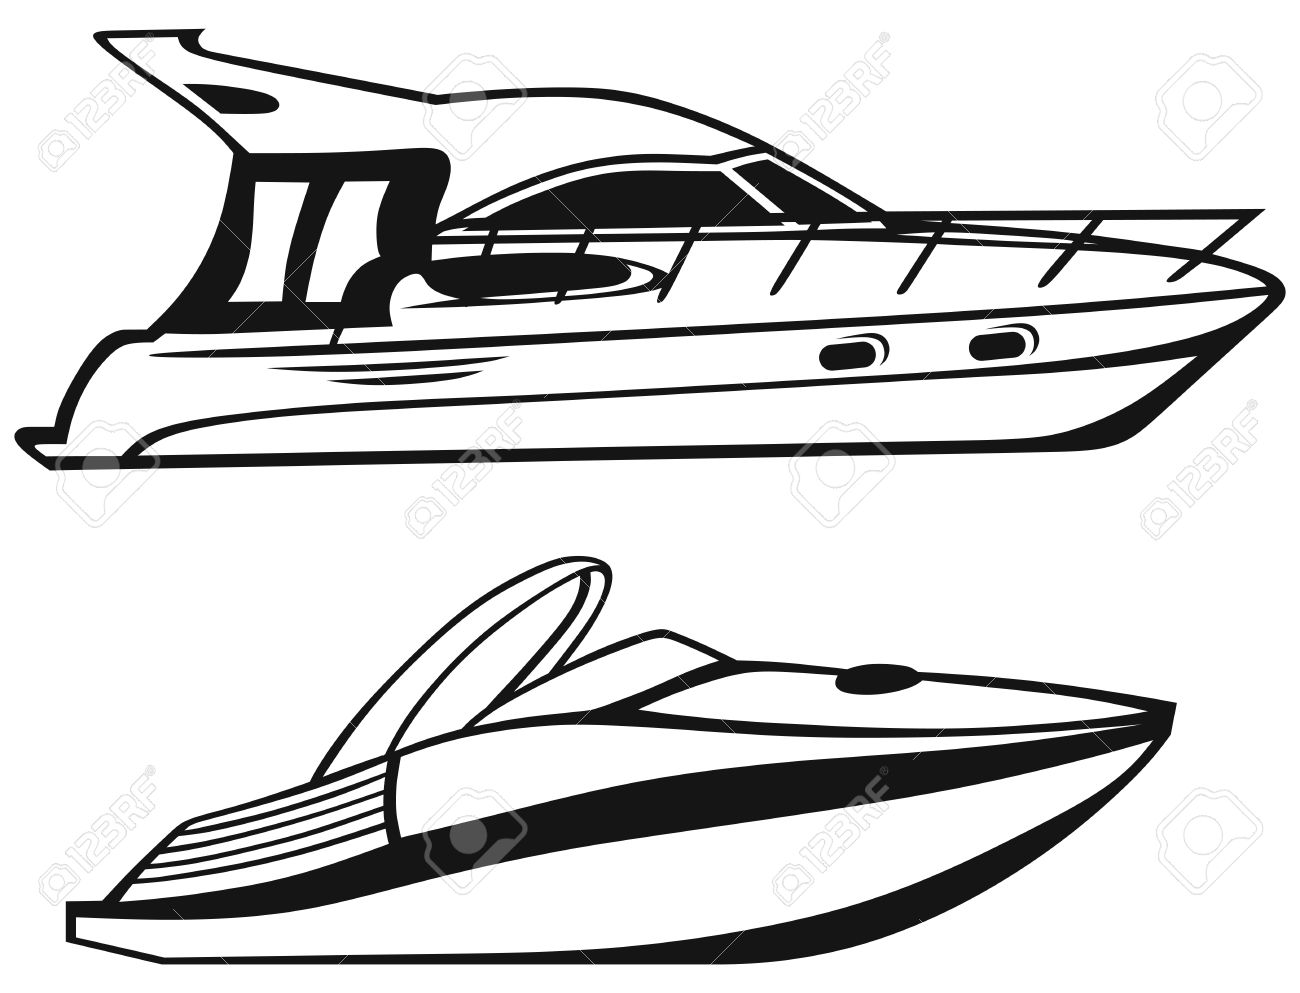 Speed boat clipart black and white 4 » Clipart Station.